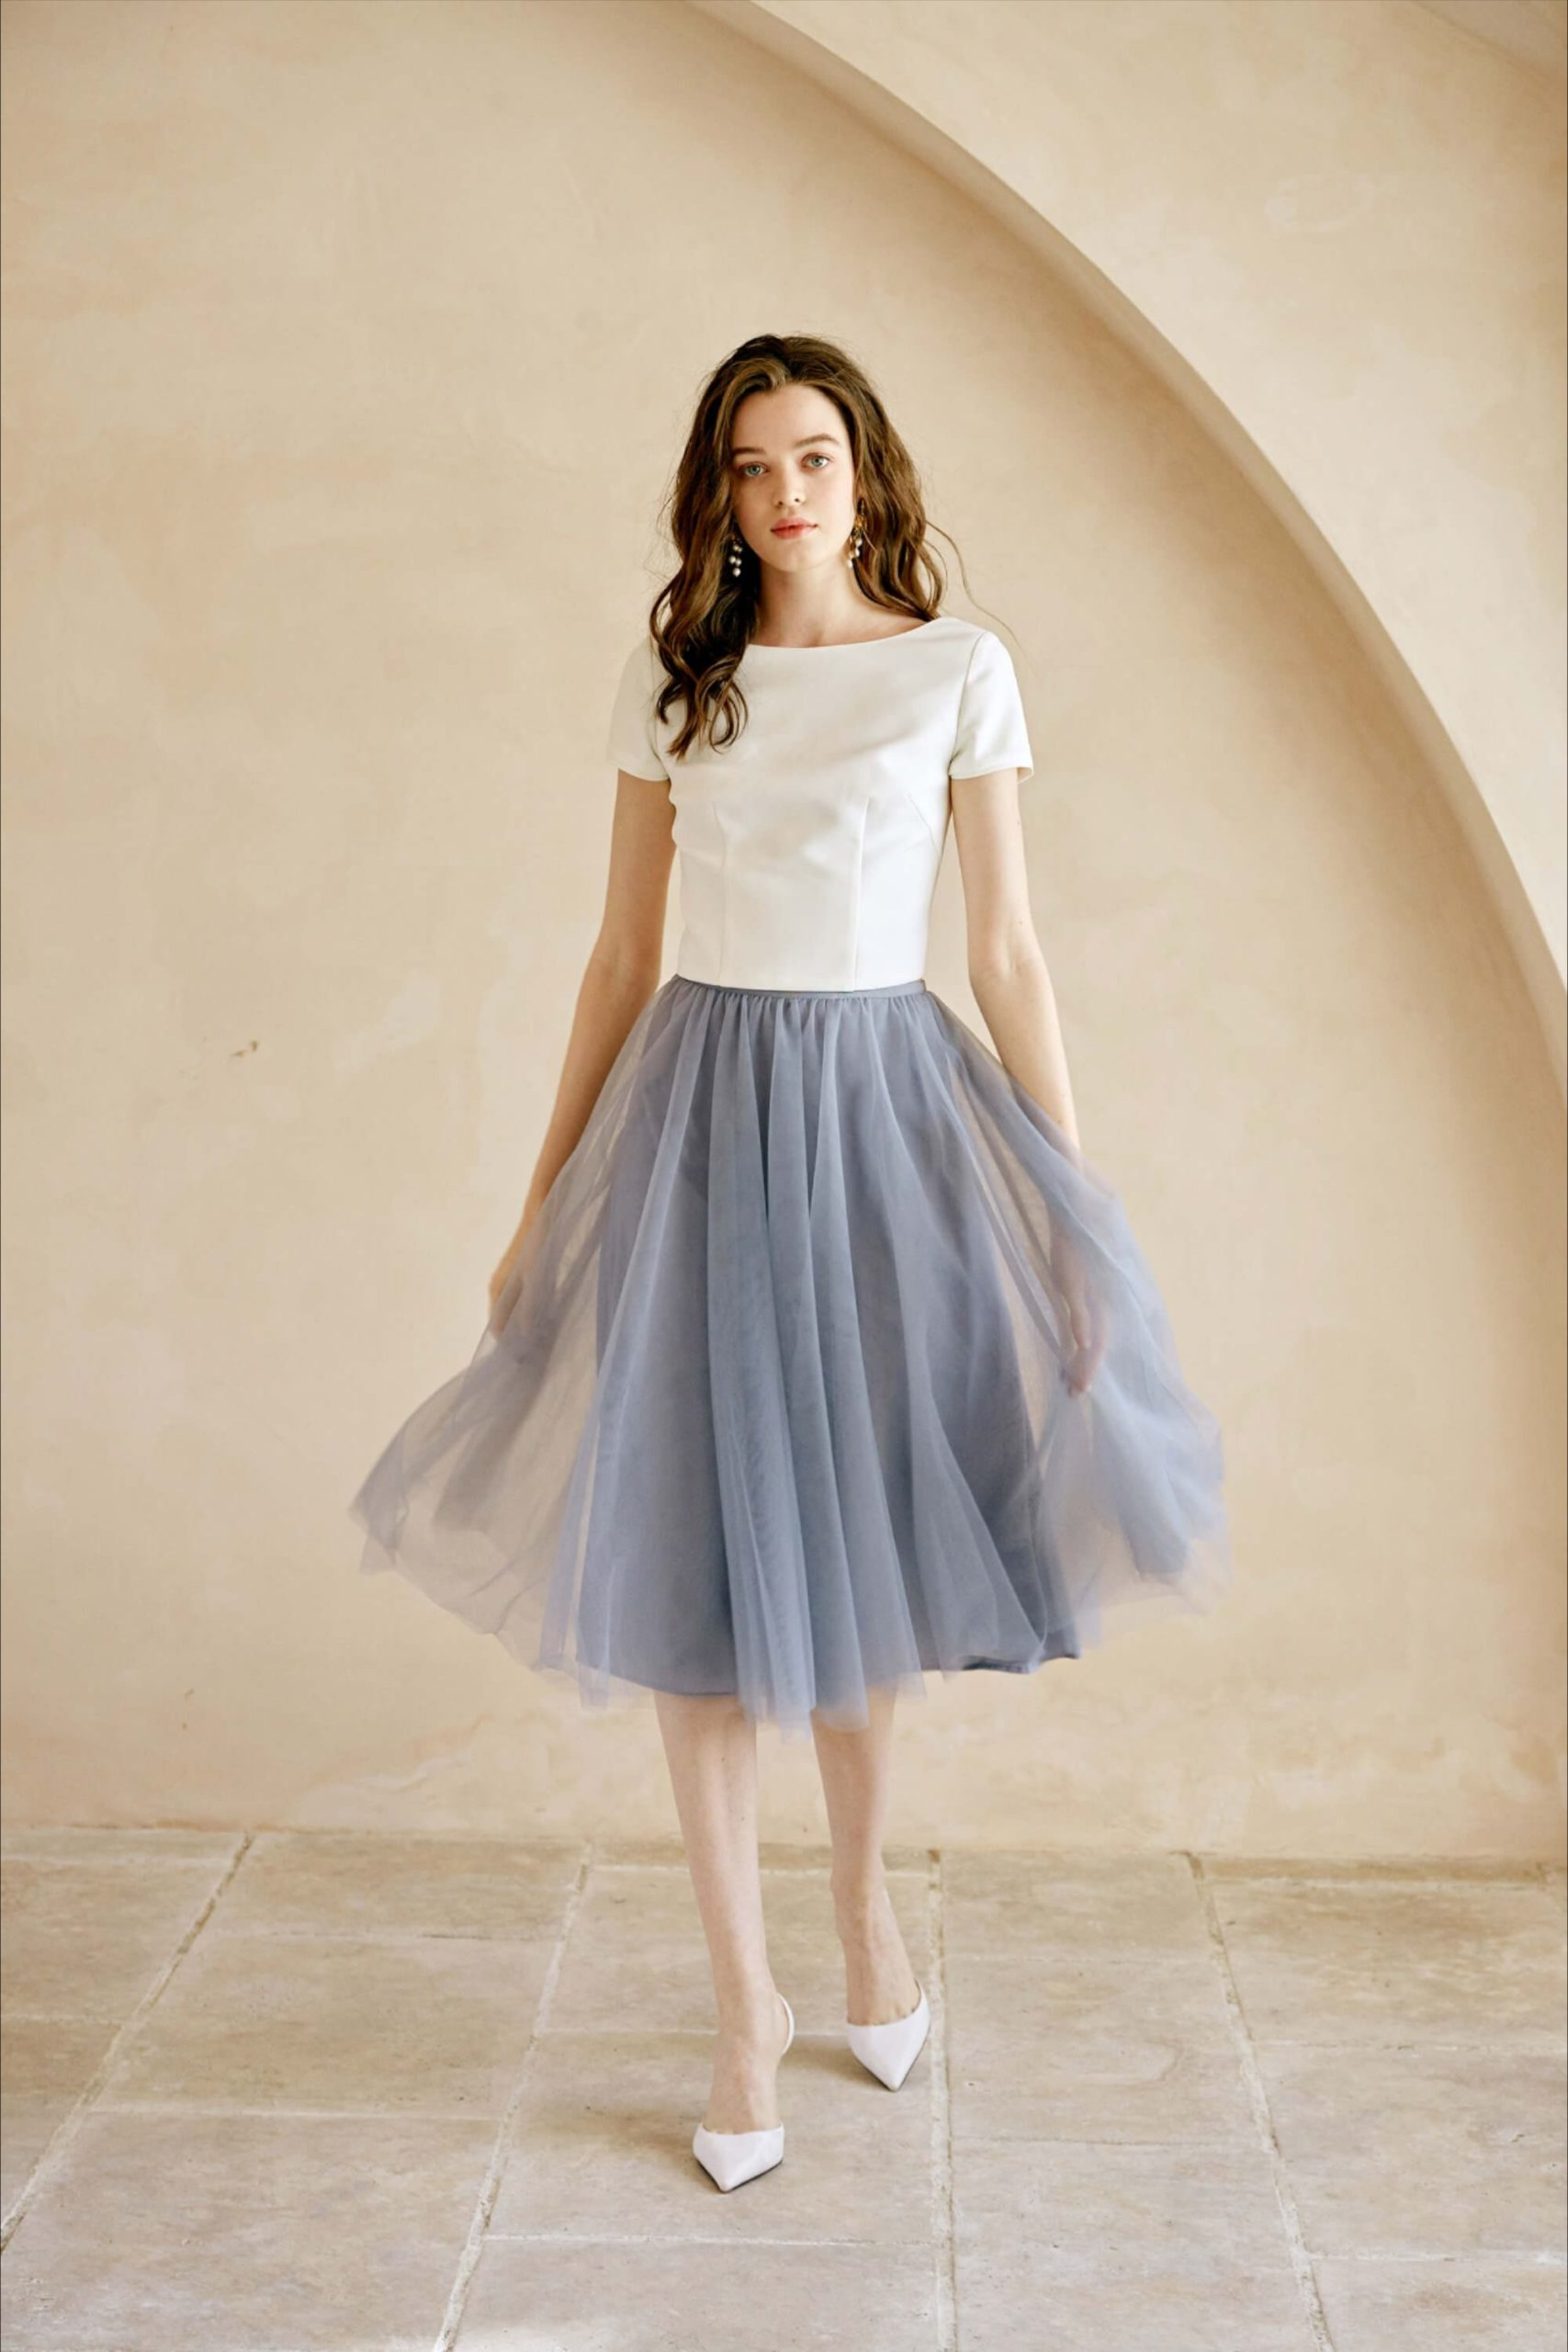 Gray High Waisted Midi Tulle Skirt Outfit